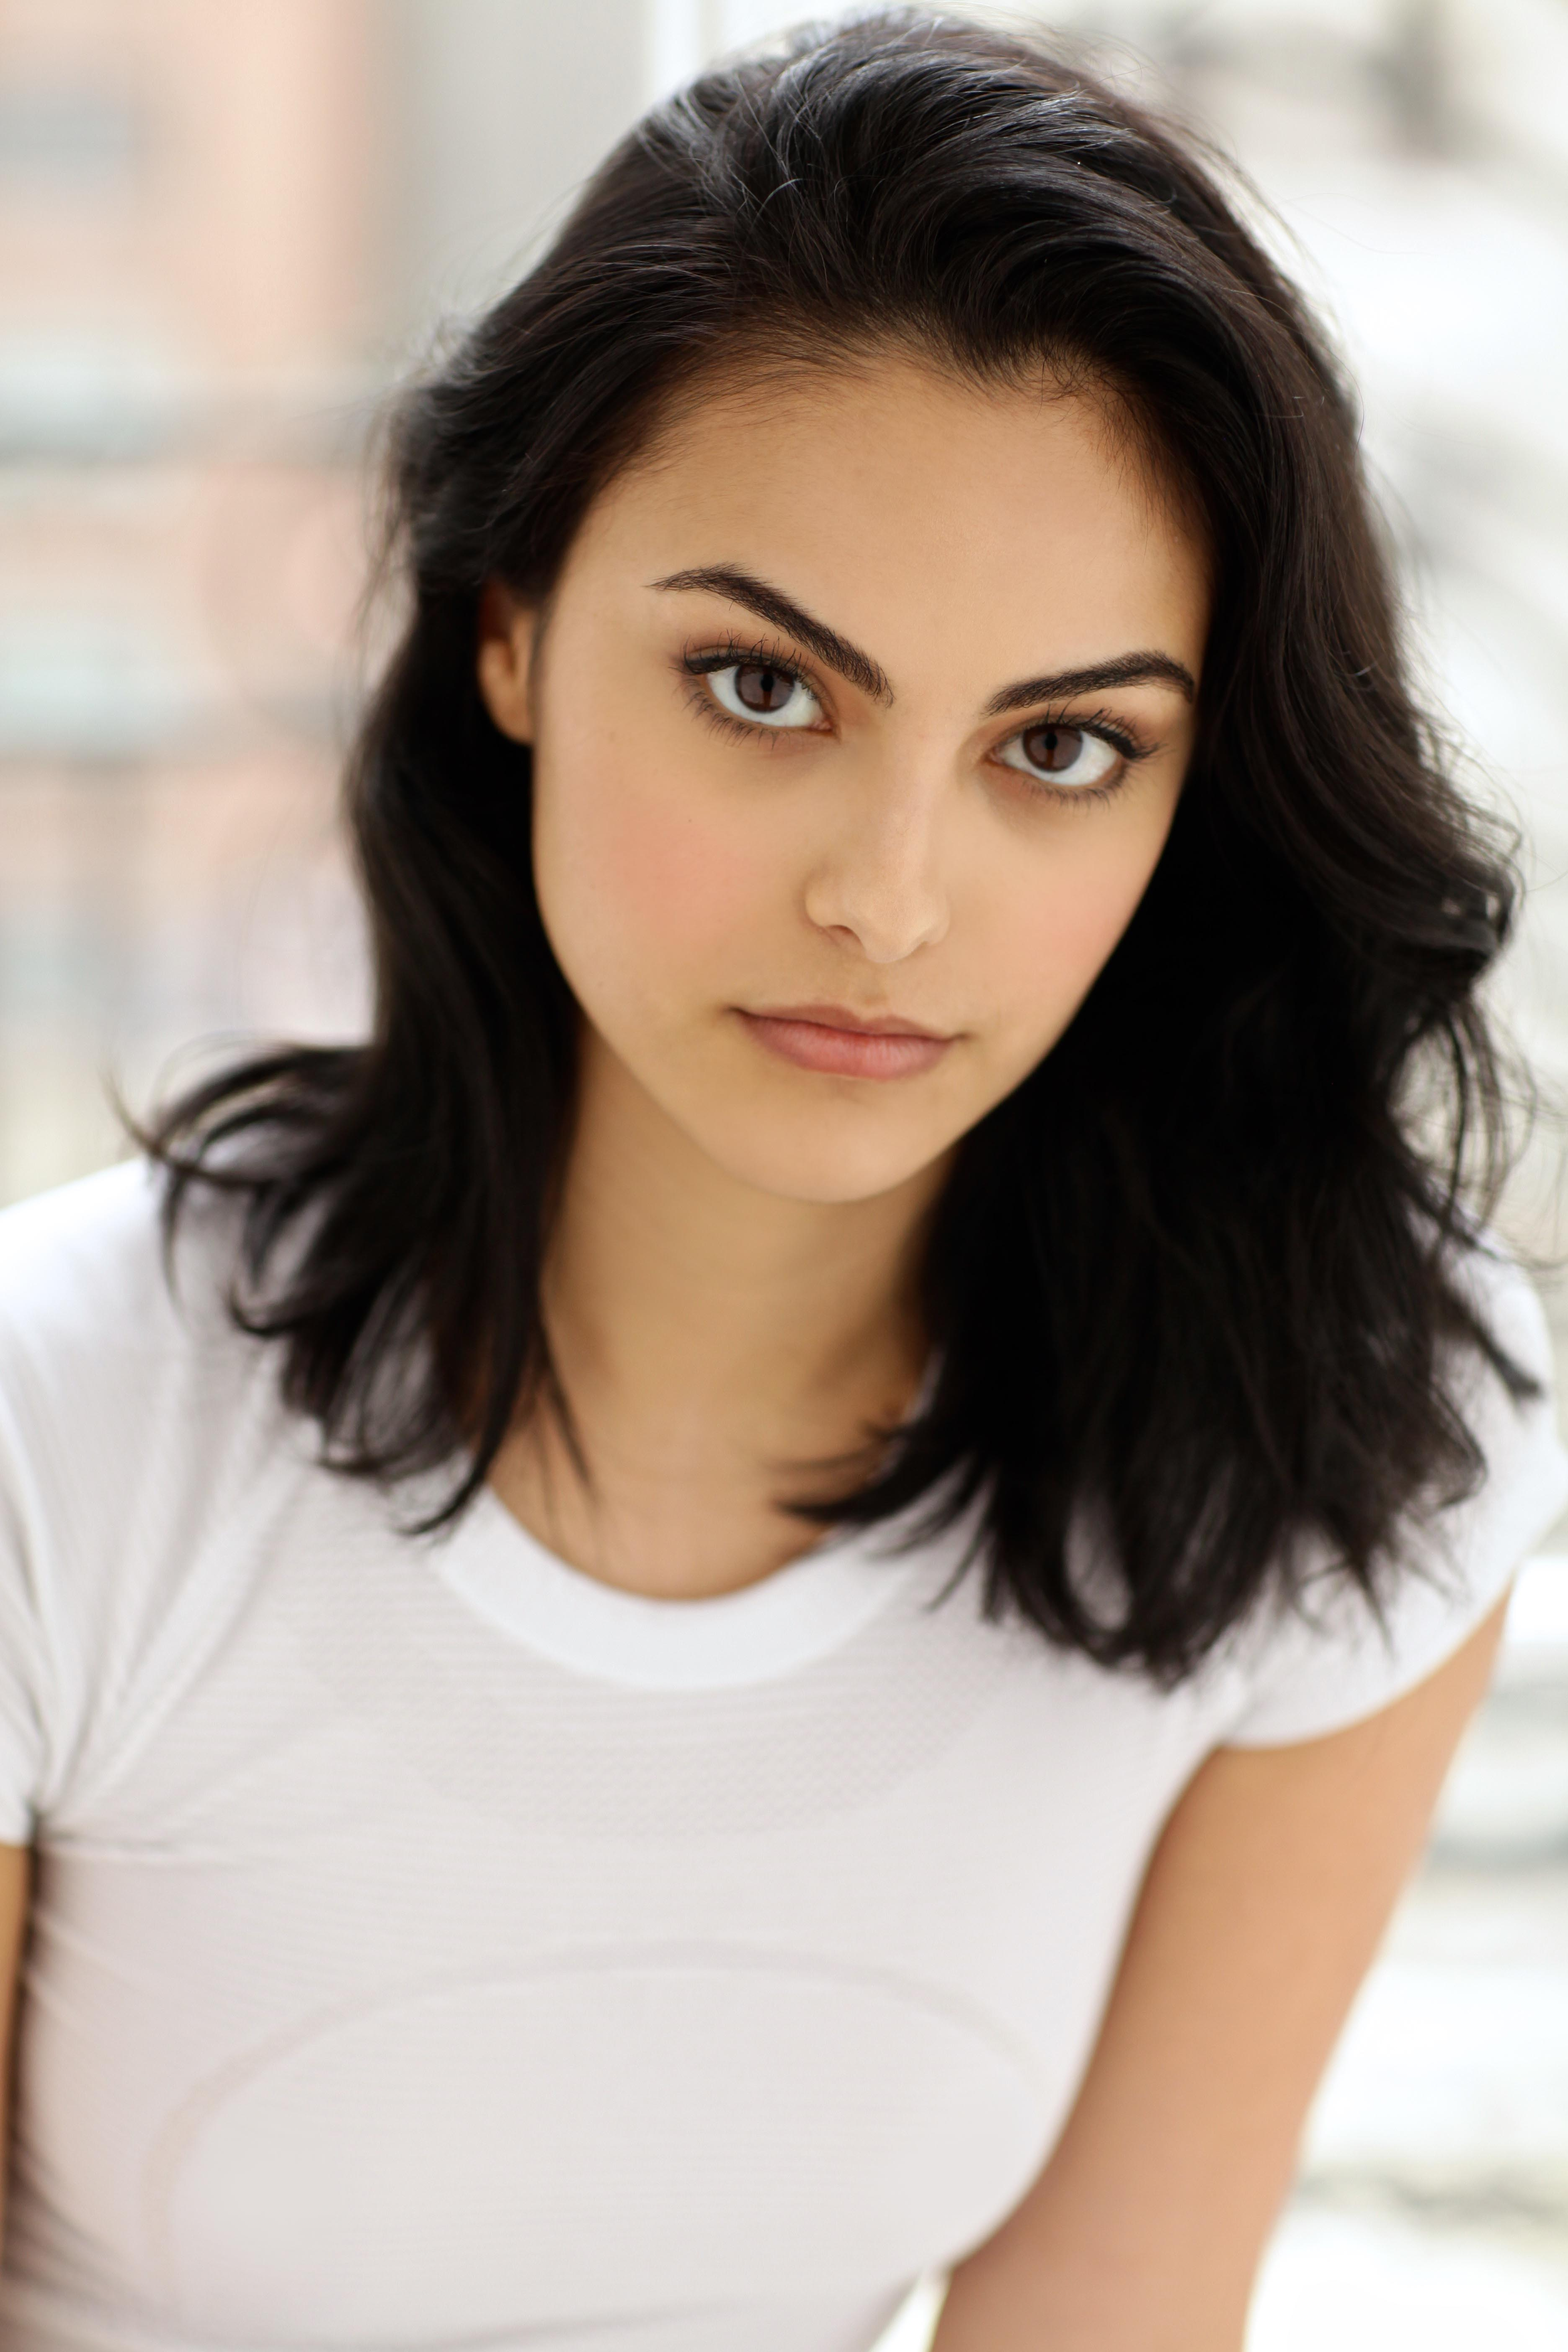 Photos Camila Mendes naked (65 images), Twitter